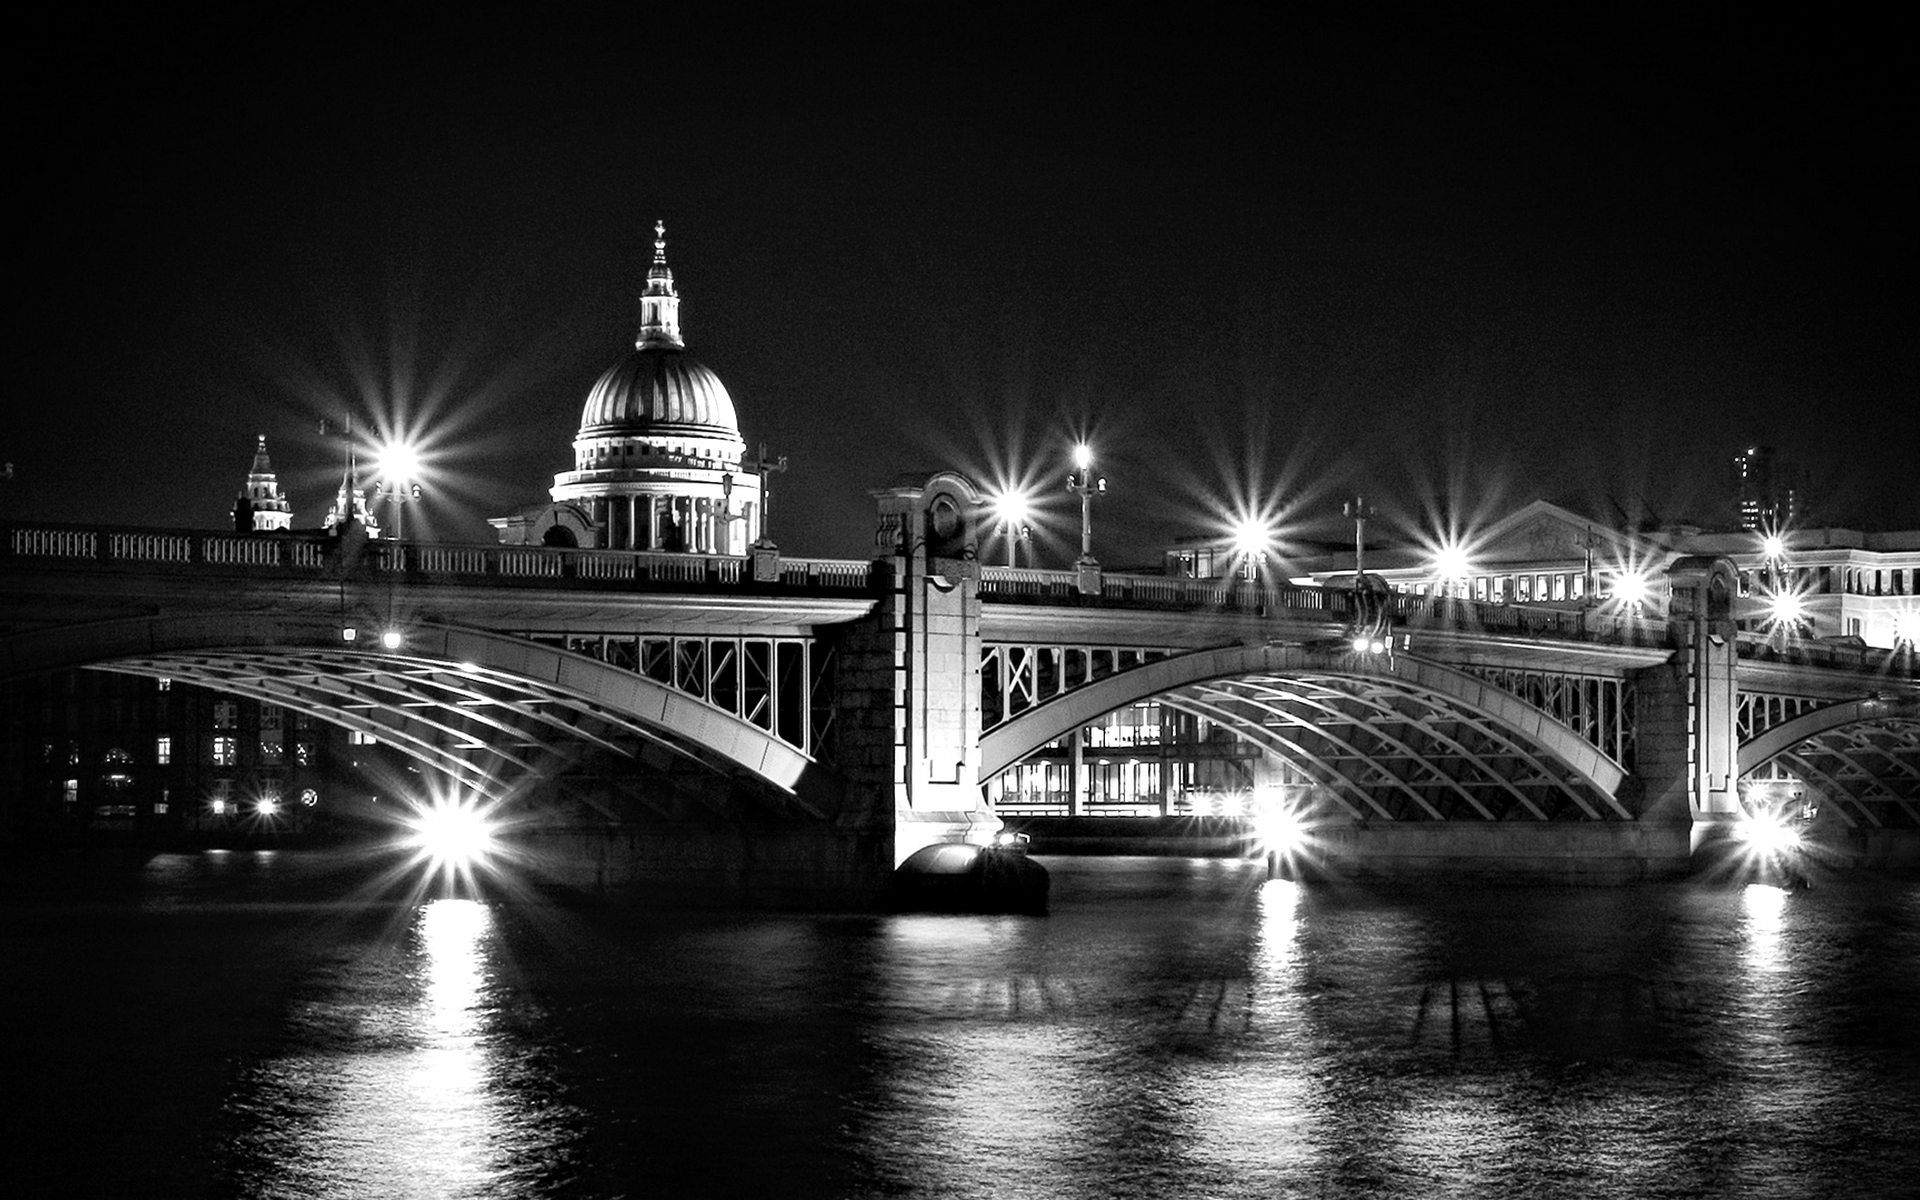 City Black and White Wallpaper   New HTC Phone 1920x1200